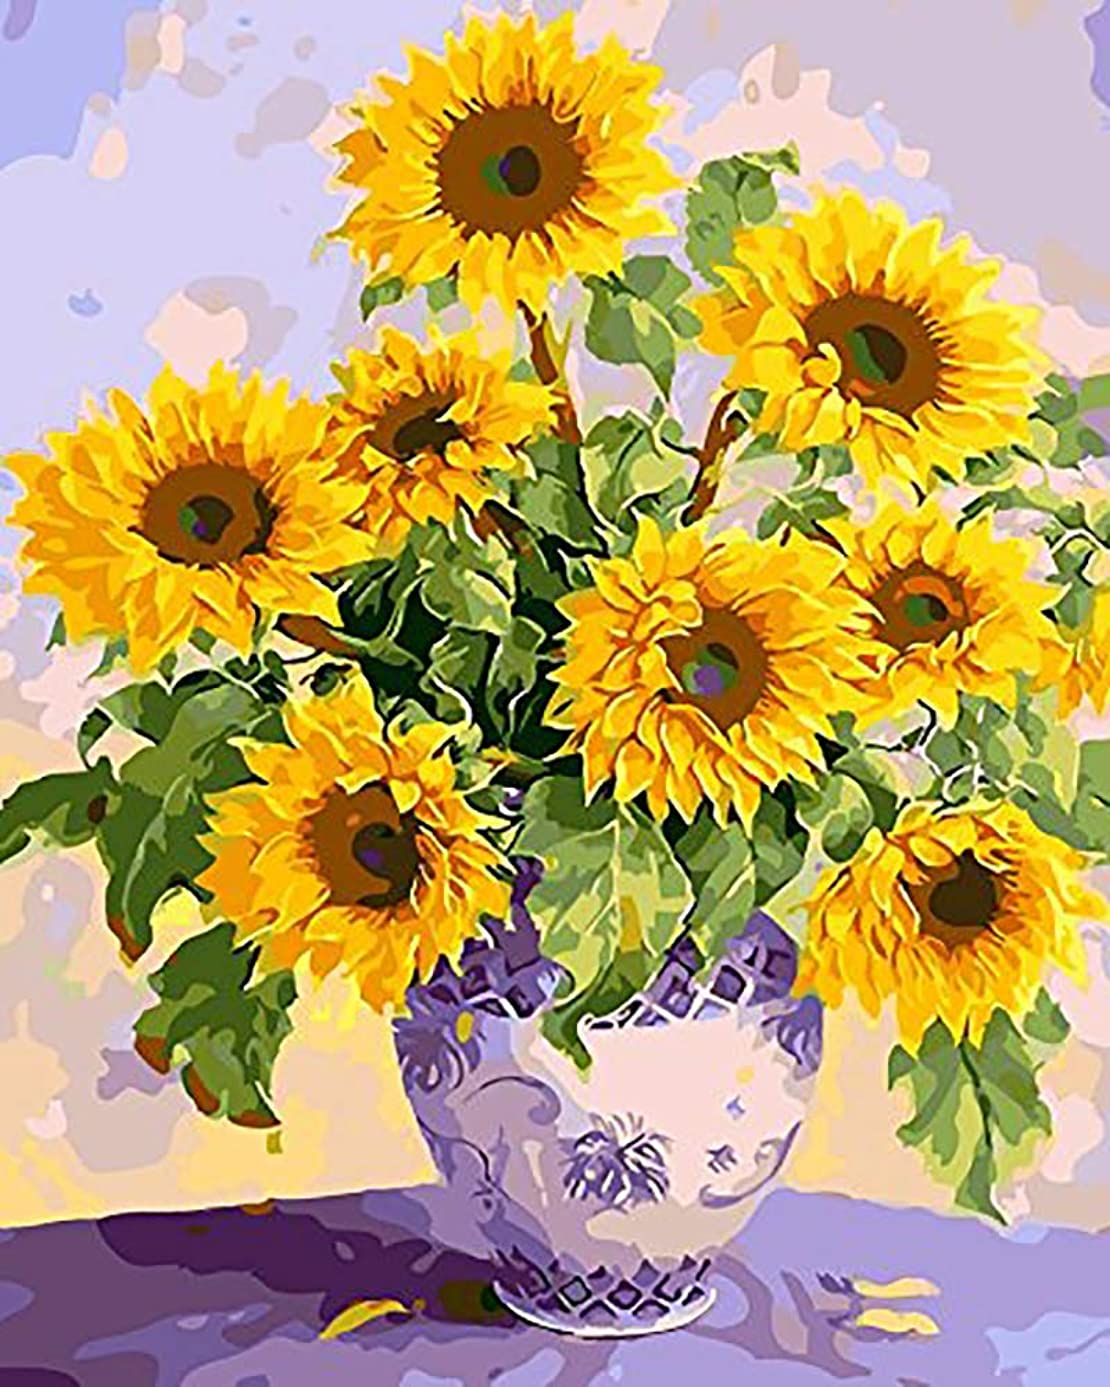 """iCoostor Paint by Numbers DIY Acrylic Painting Kit for Kids & Adults Beginner – 16"""" x 20"""" Beautiful Sunflower Pattern with 3 Brushes & Bright Colors"""